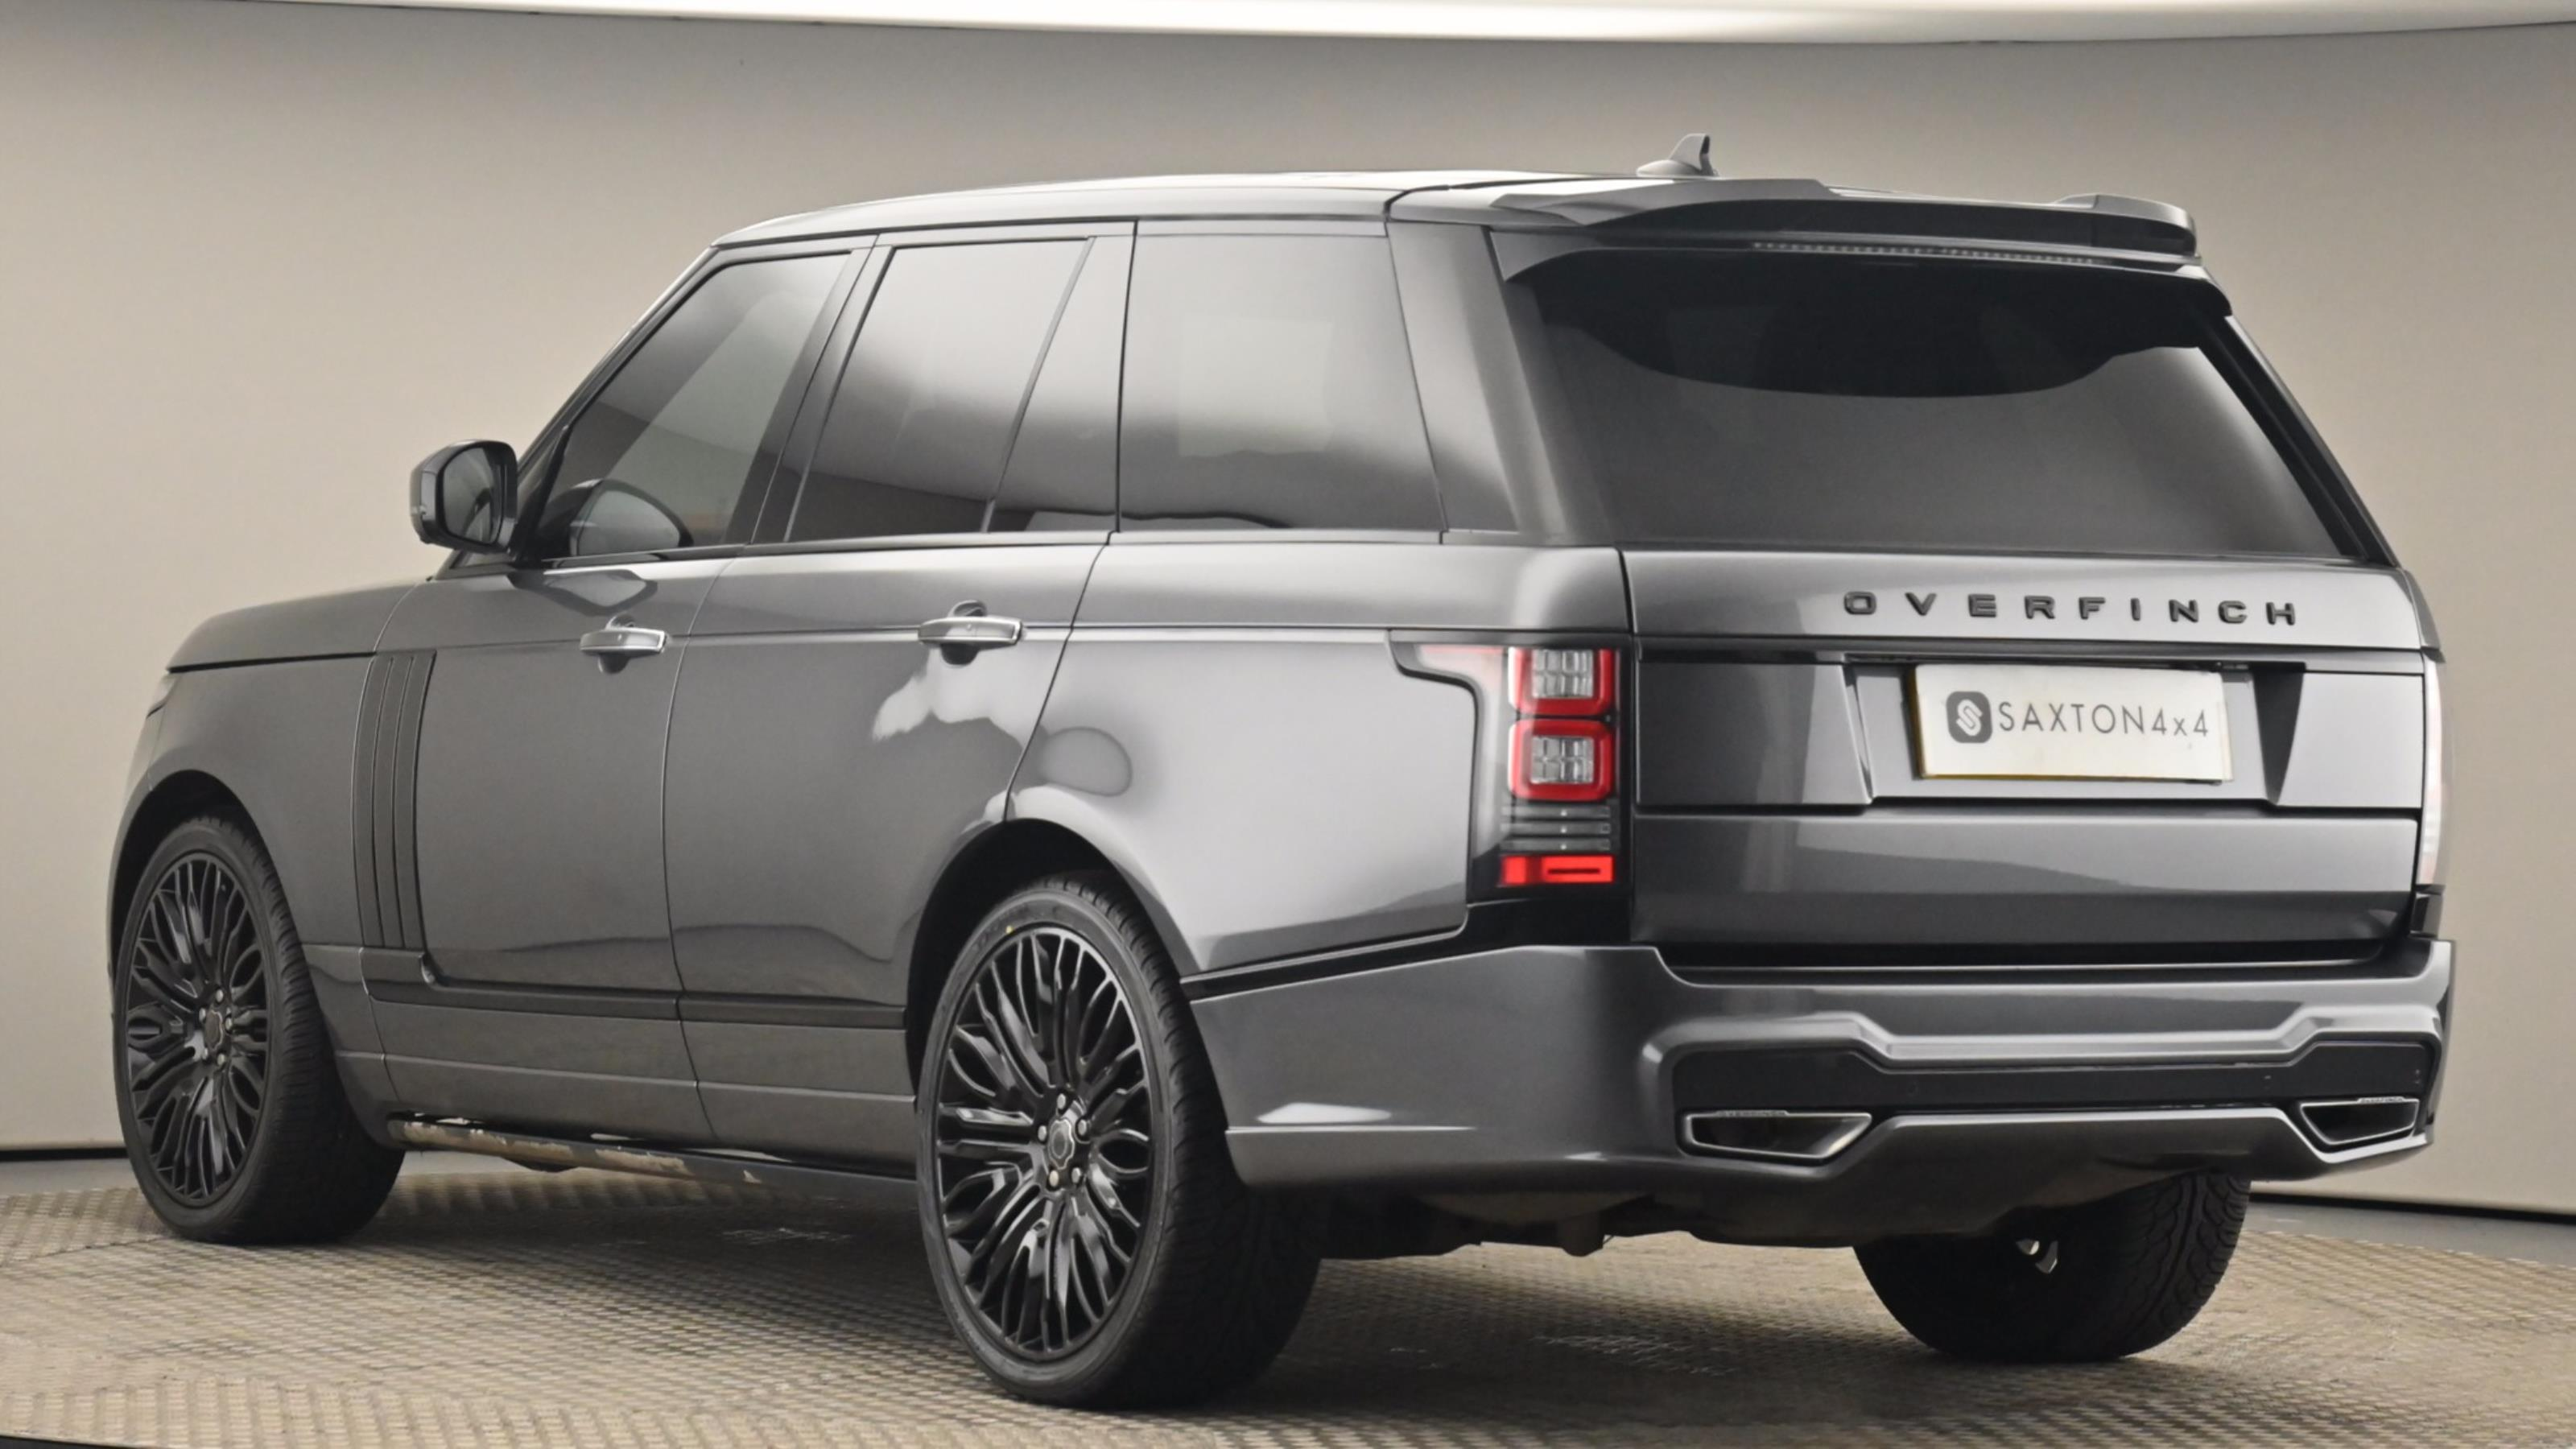 Used 2015 Land Rover RANGE ROVER 4.4 SDV8 Autobiography 4dr Auto GREY at Saxton4x4